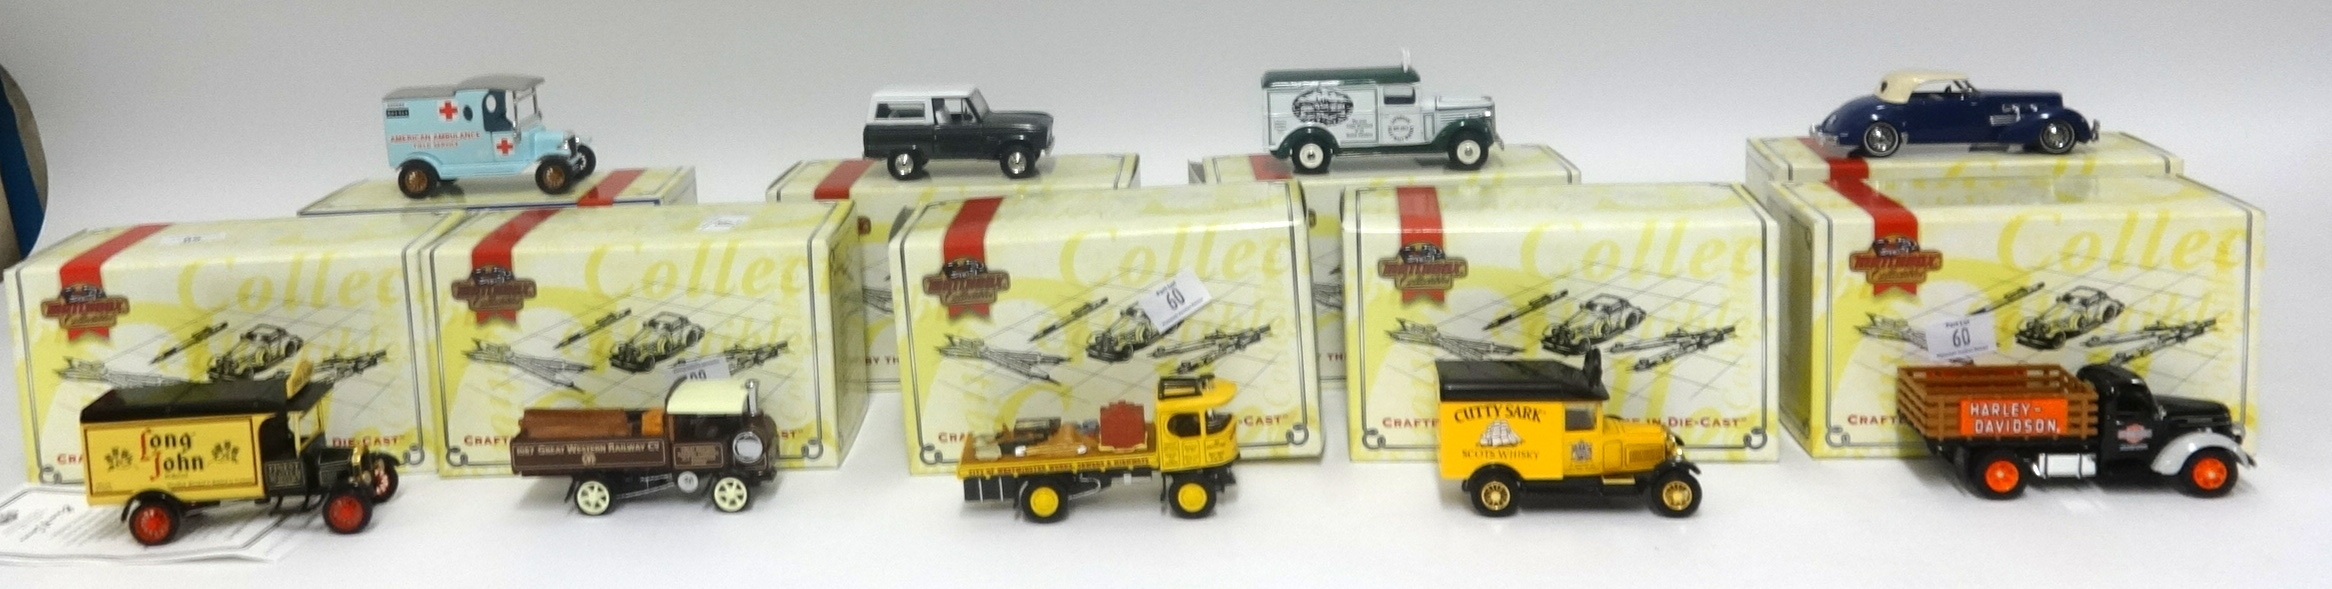 Lot 060 - Large collection of Matchbox diecast models to include advertising vans, steam rollers and other